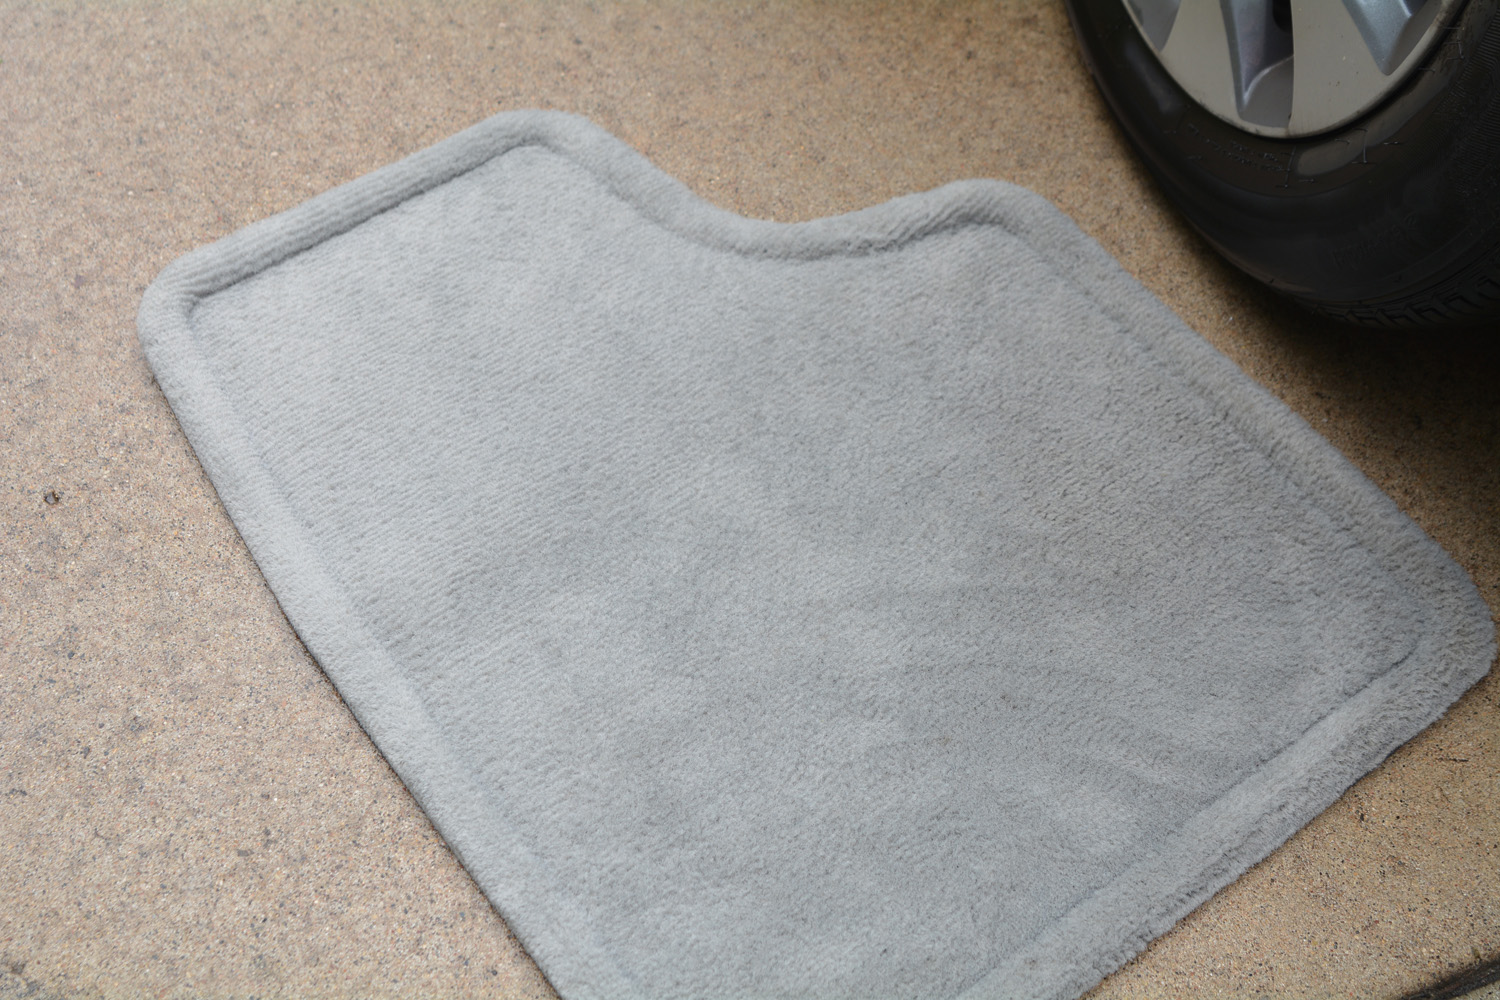 Clean car floor mat after using Super Clean.